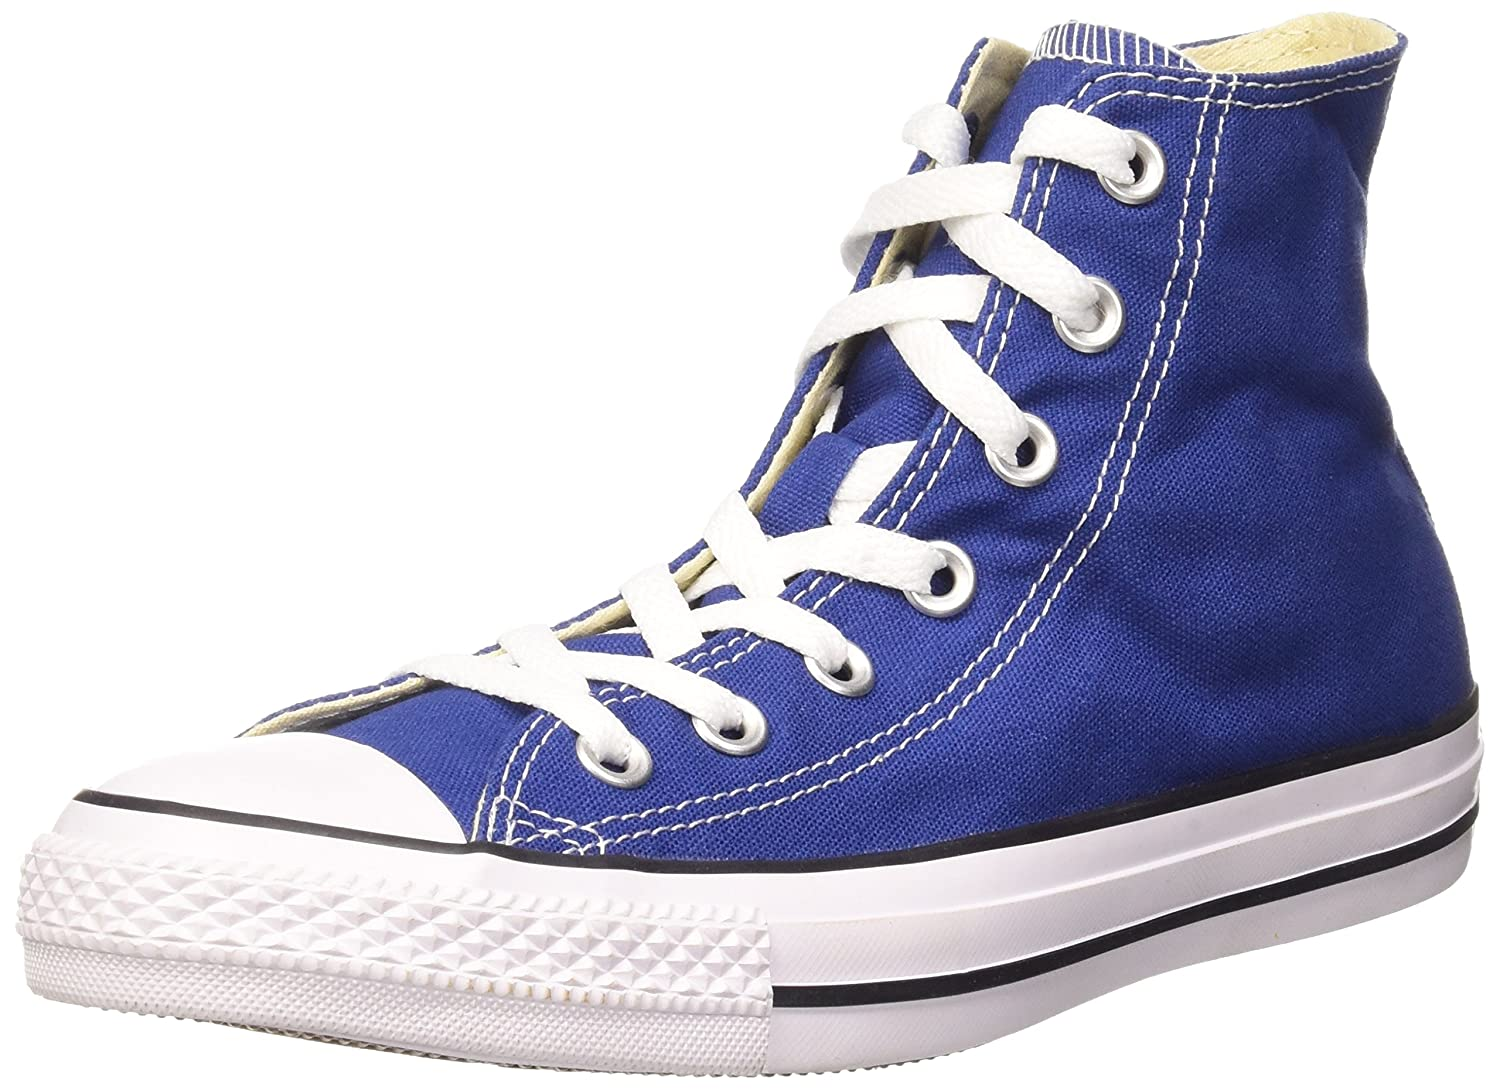 Converse Chuck Taylor 19902 All Star, Sneakers Mixte Adulte Taylor All Bleu (Roadtrip Blue/White/Black) 137e998 - robotanarchy.space